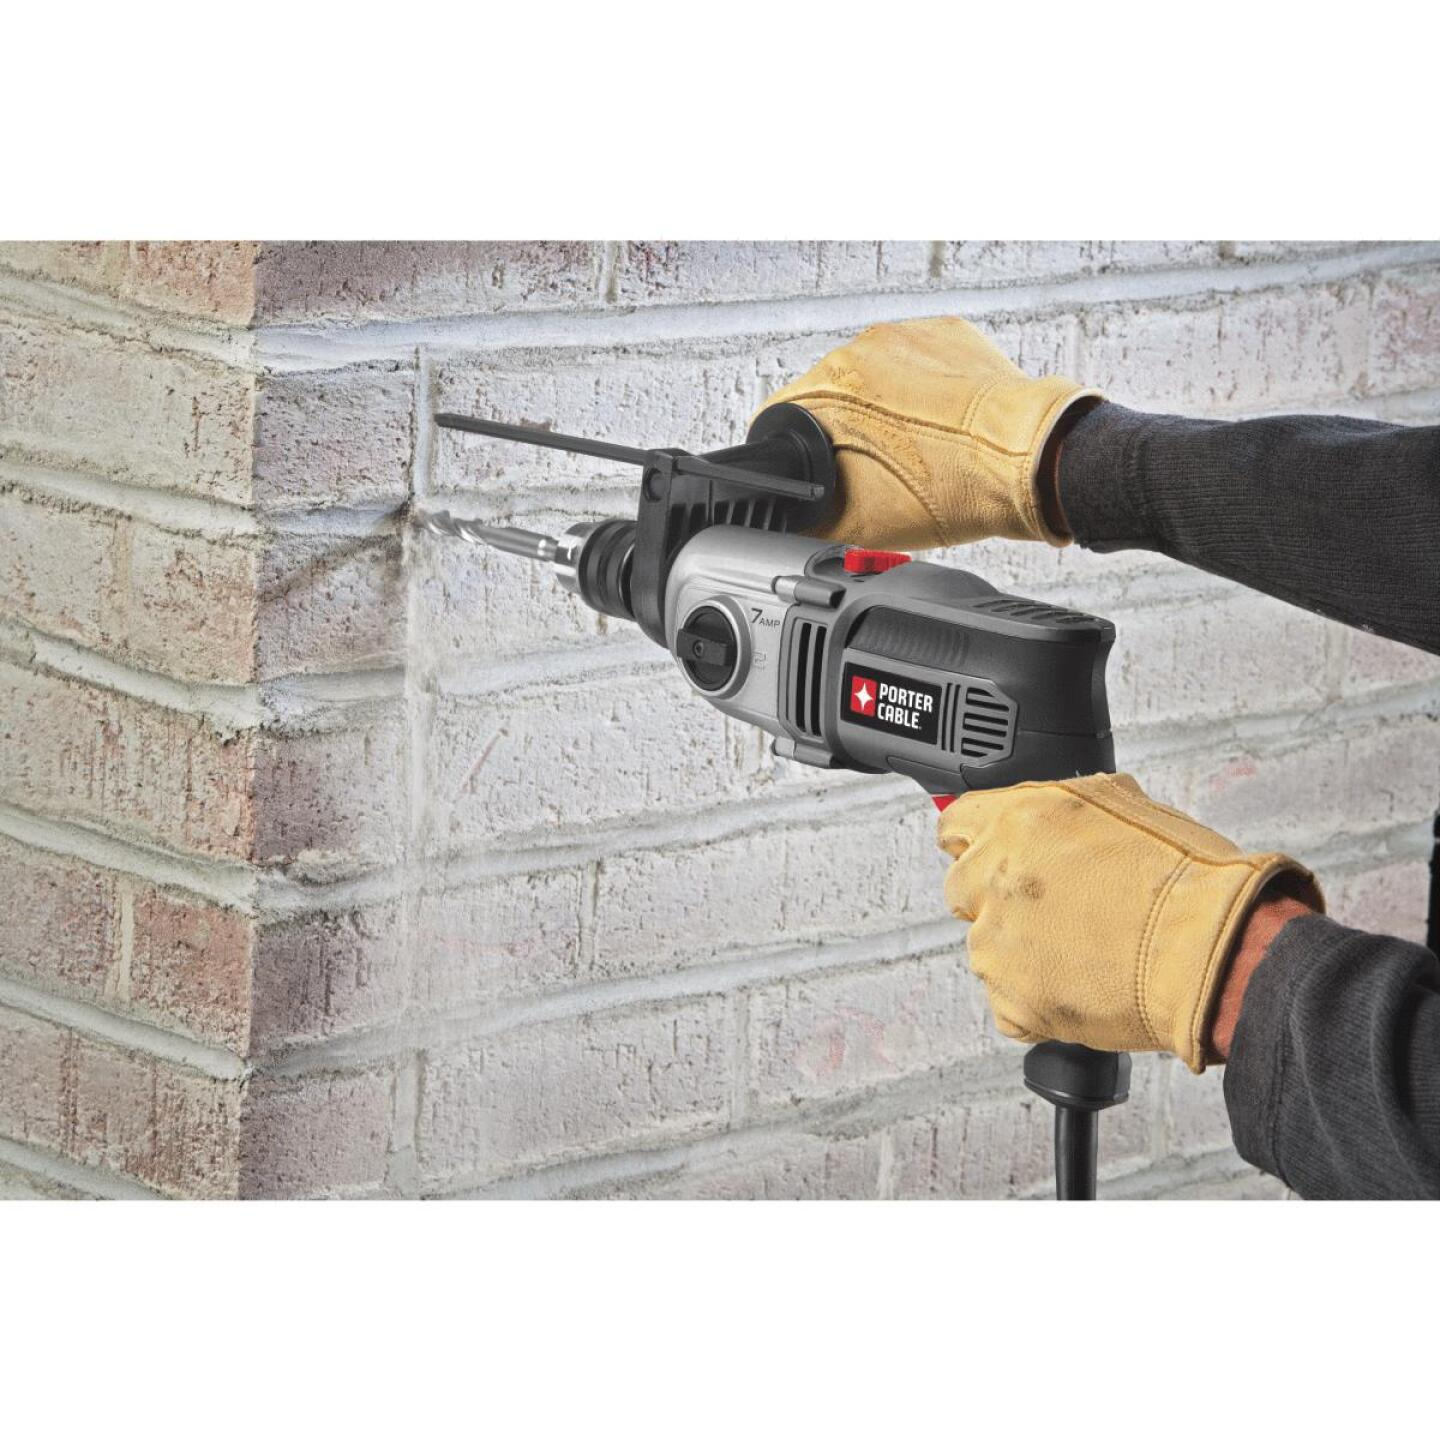 Porter Cable 1/2 In. Keyed 7.0-Amp VSR 2-Speed Electric Hammer Drill Image 4